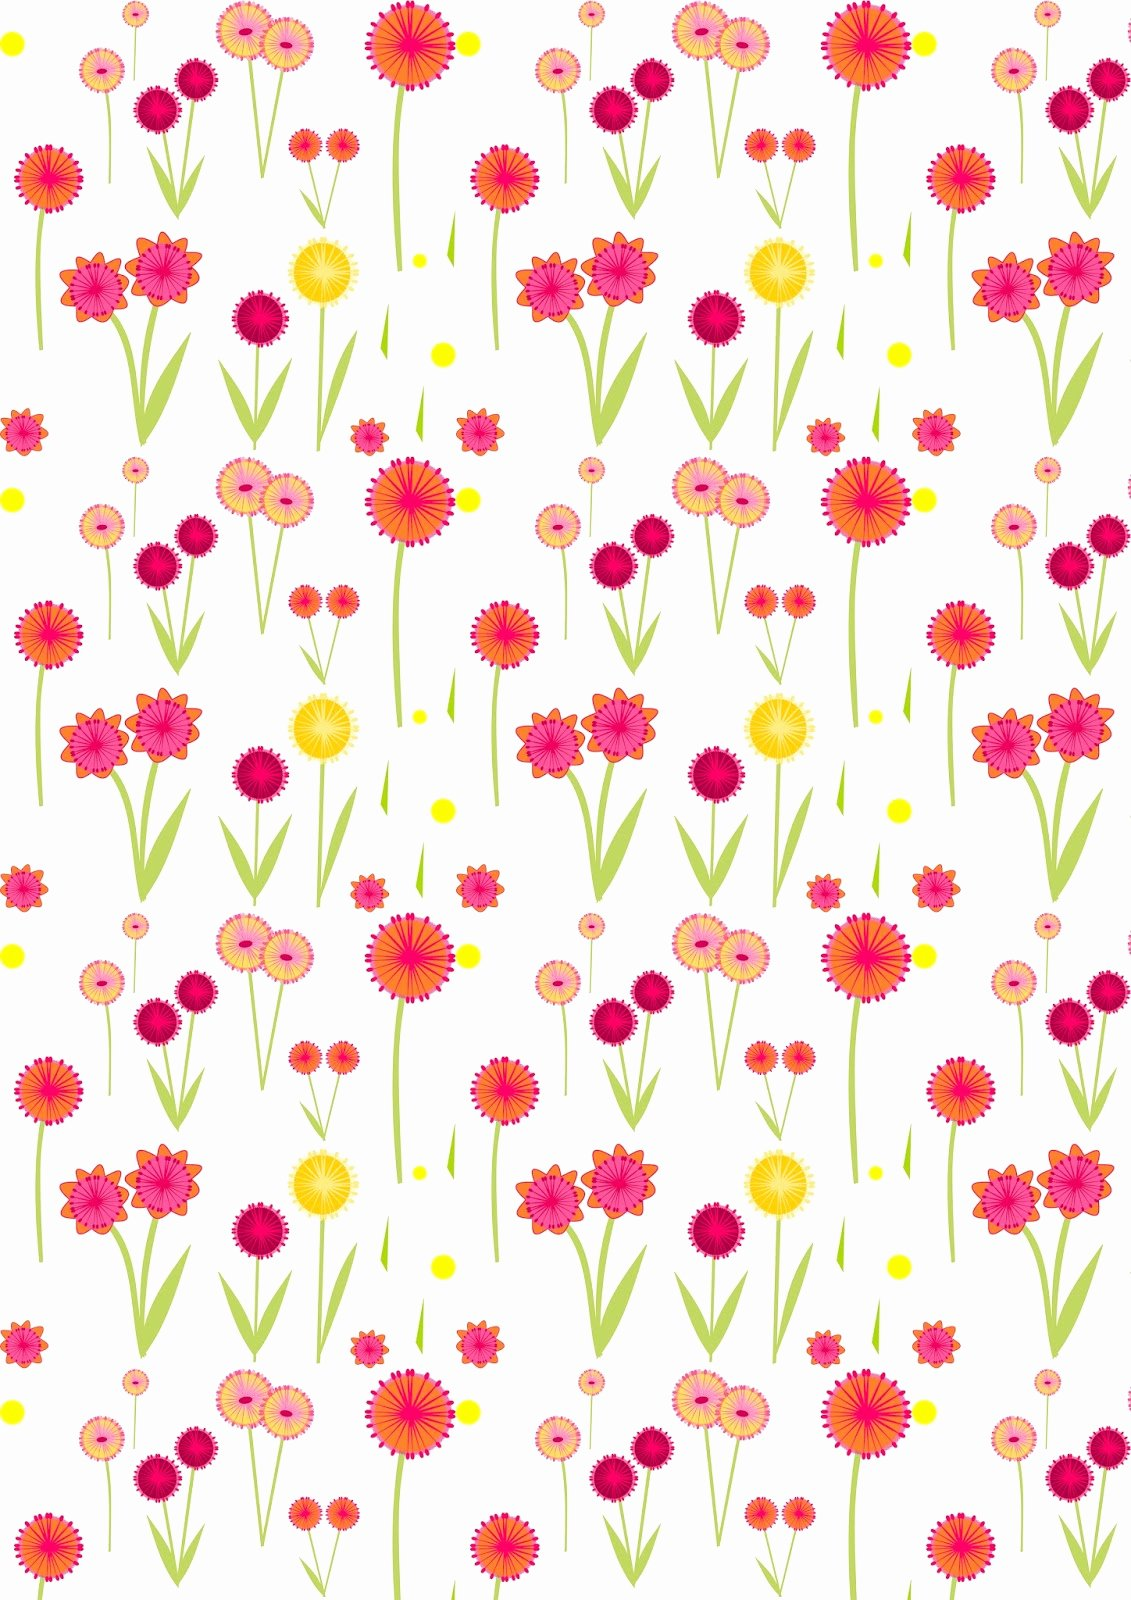 Paper Flower Pattern Printable Luxury Free Digital Flower Scrapbooking Paper Ausdruckbares